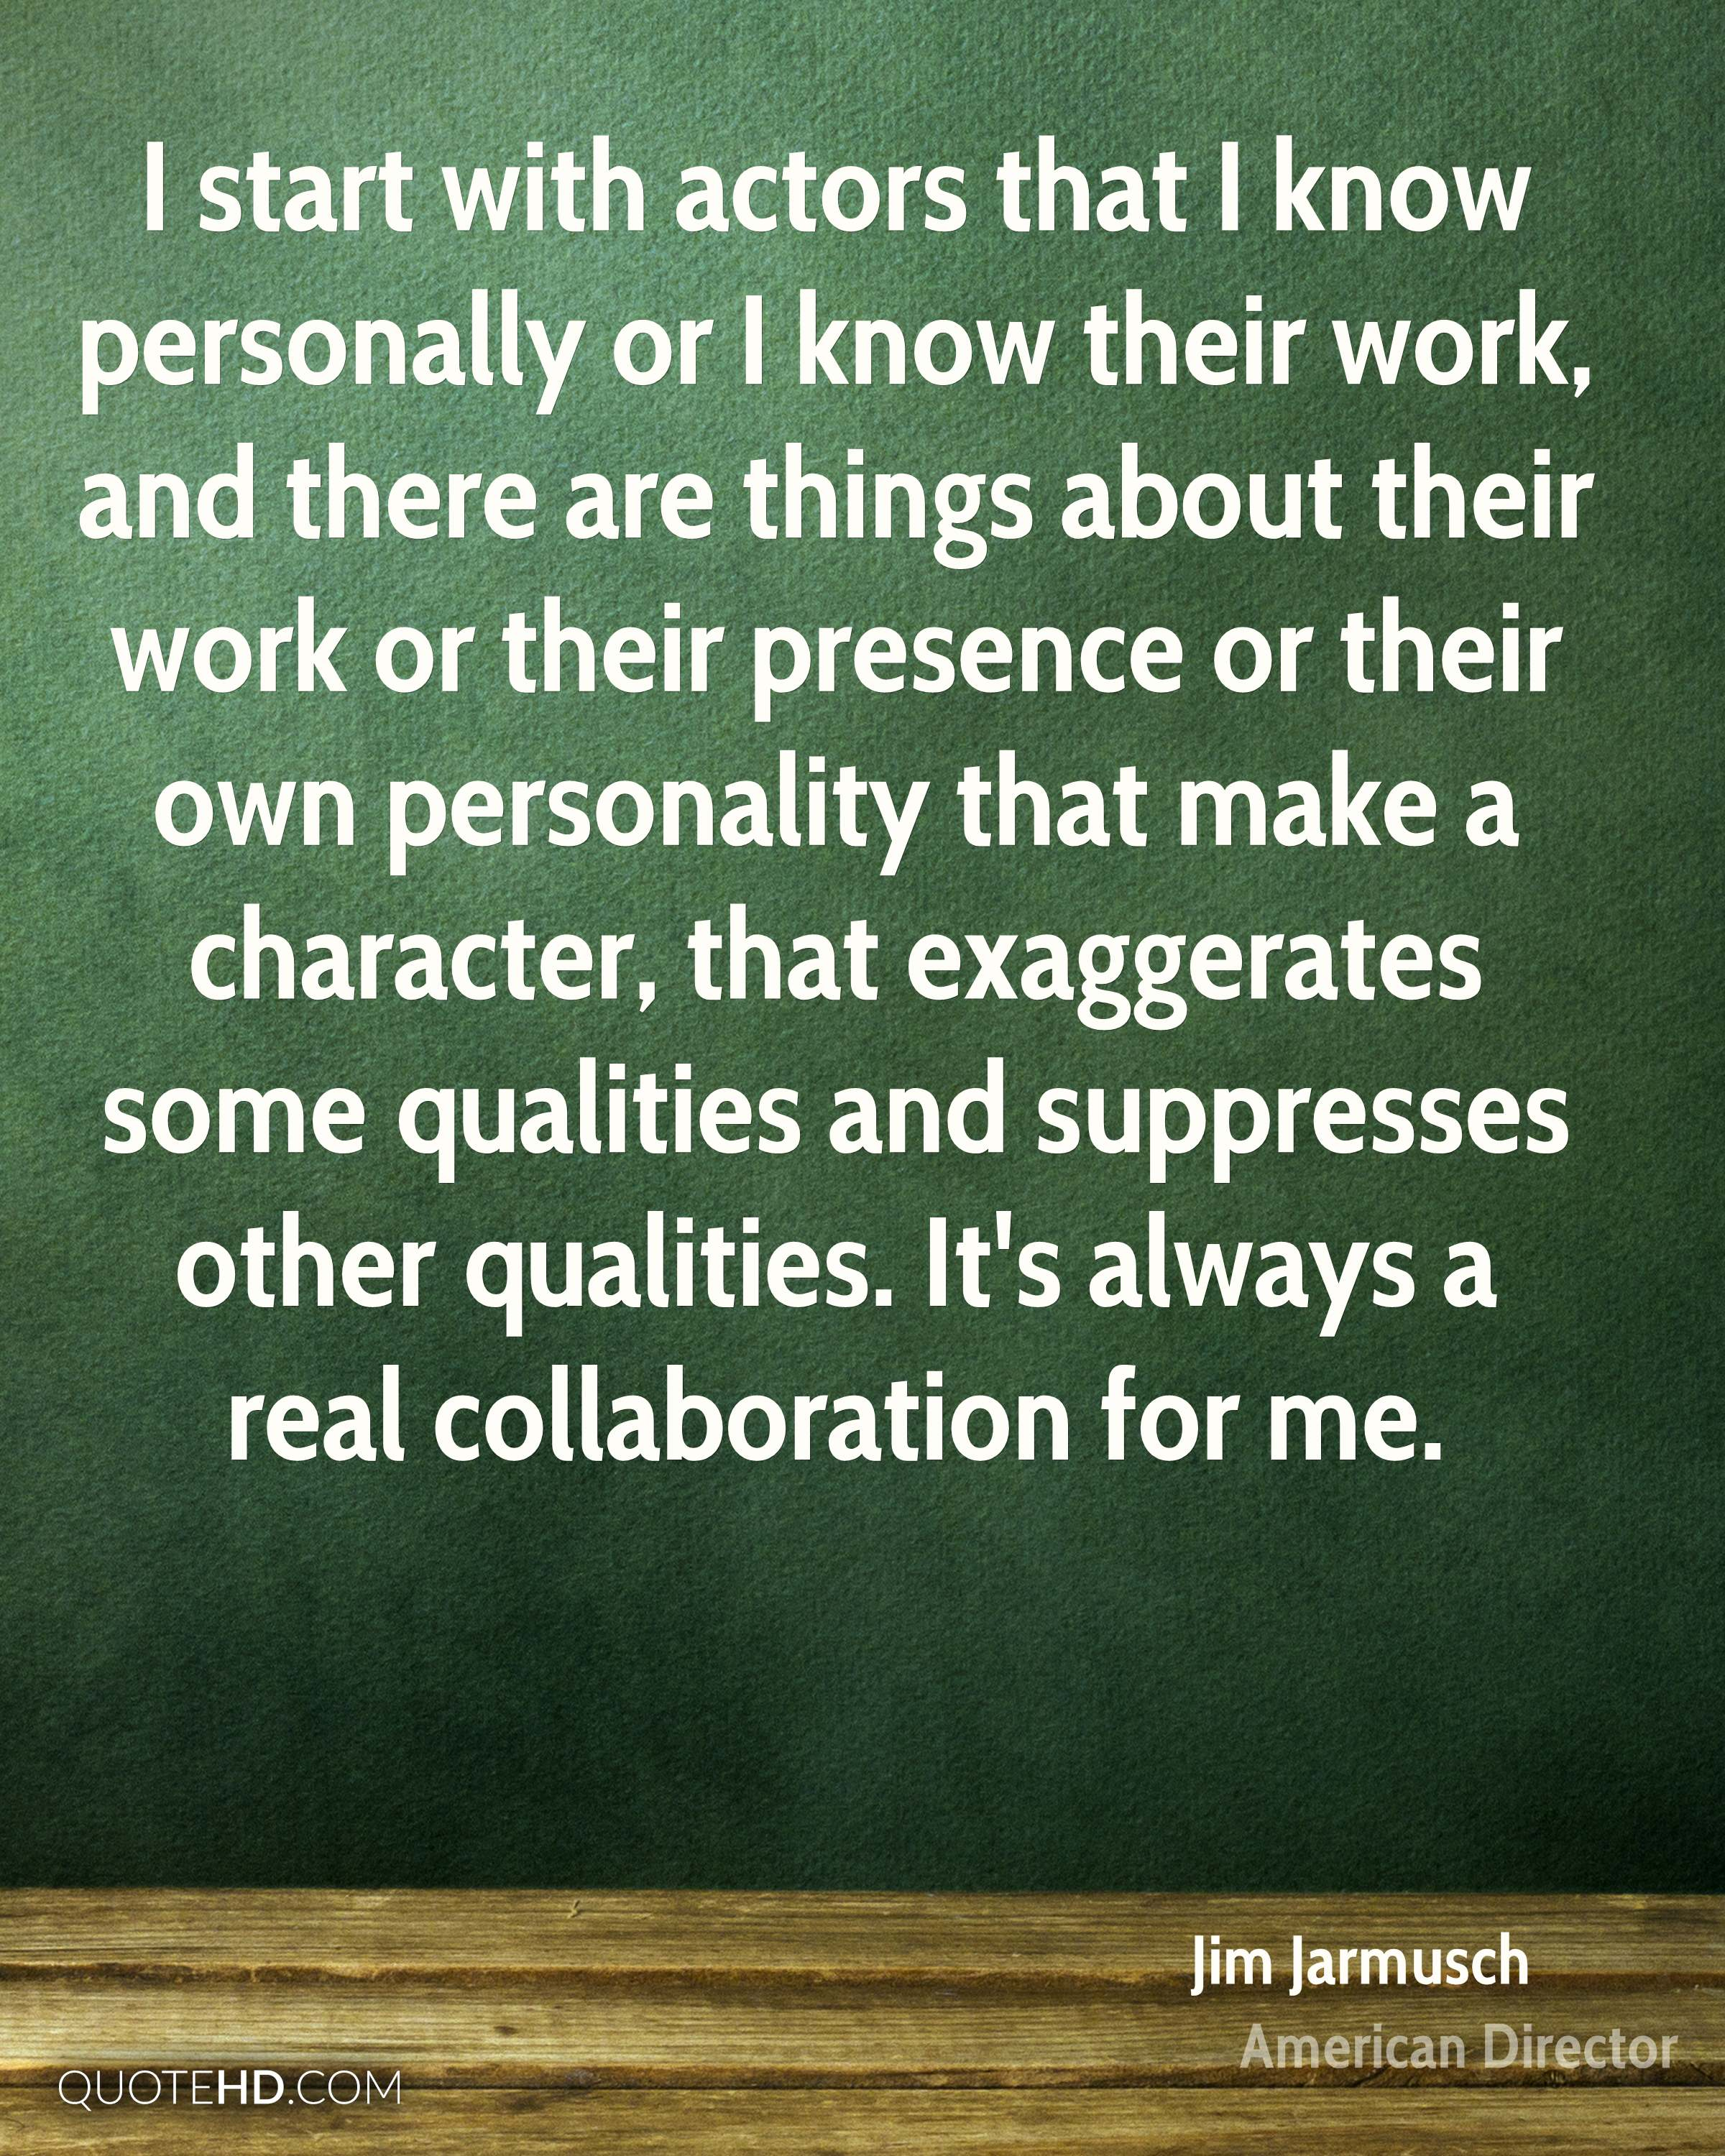 I start with actors that I know personally or I know their work, and there are things about their work or their presence or their own personality that make a character, that exaggerates some qualities and suppresses other qualities. It's always a real collaboration for me.